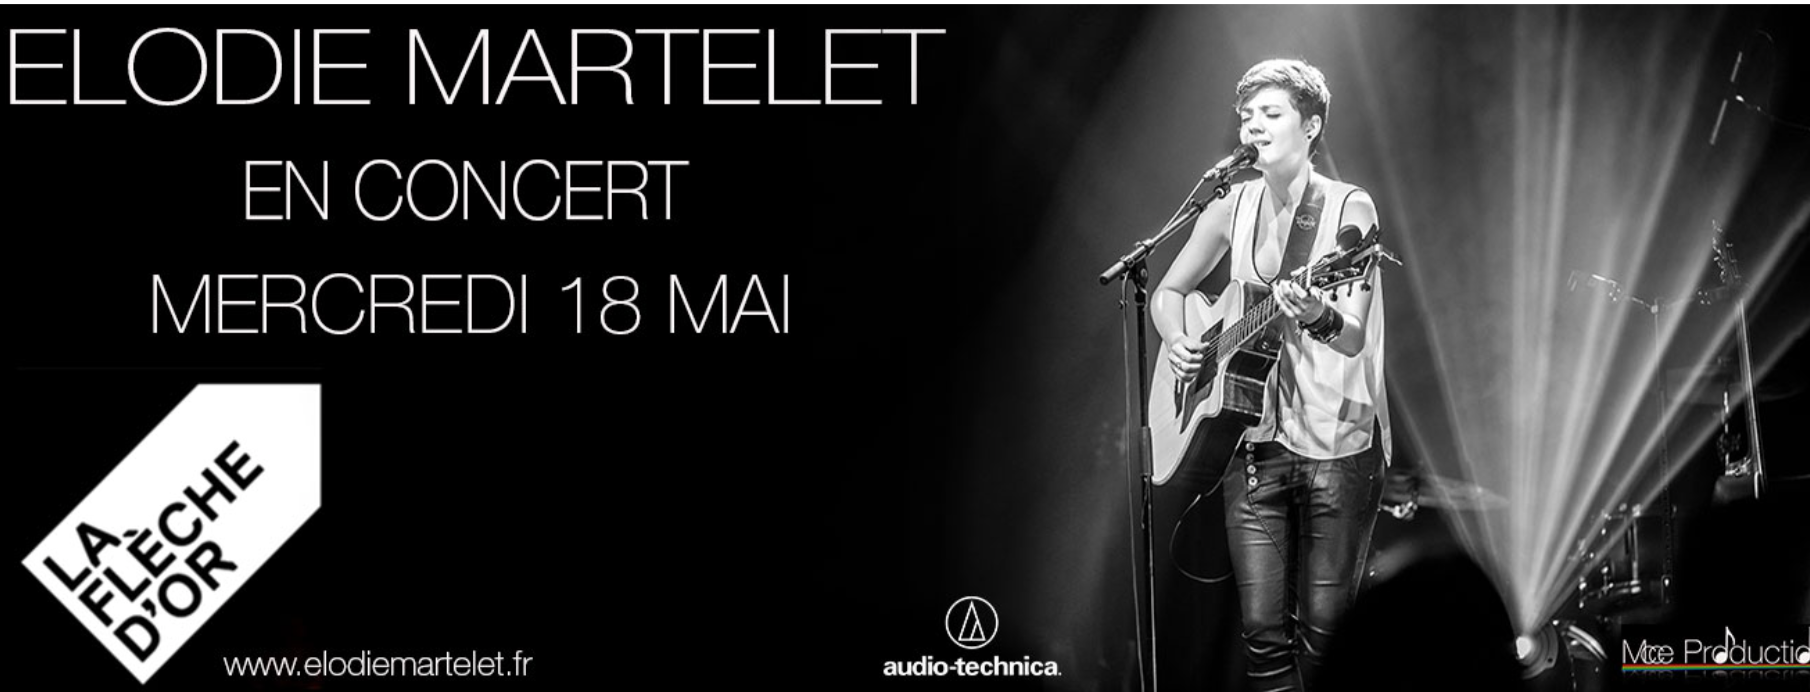 INTERVIEW Elodie Martelet : The Voice, son premier album, ses projets… La chanteuse se confie